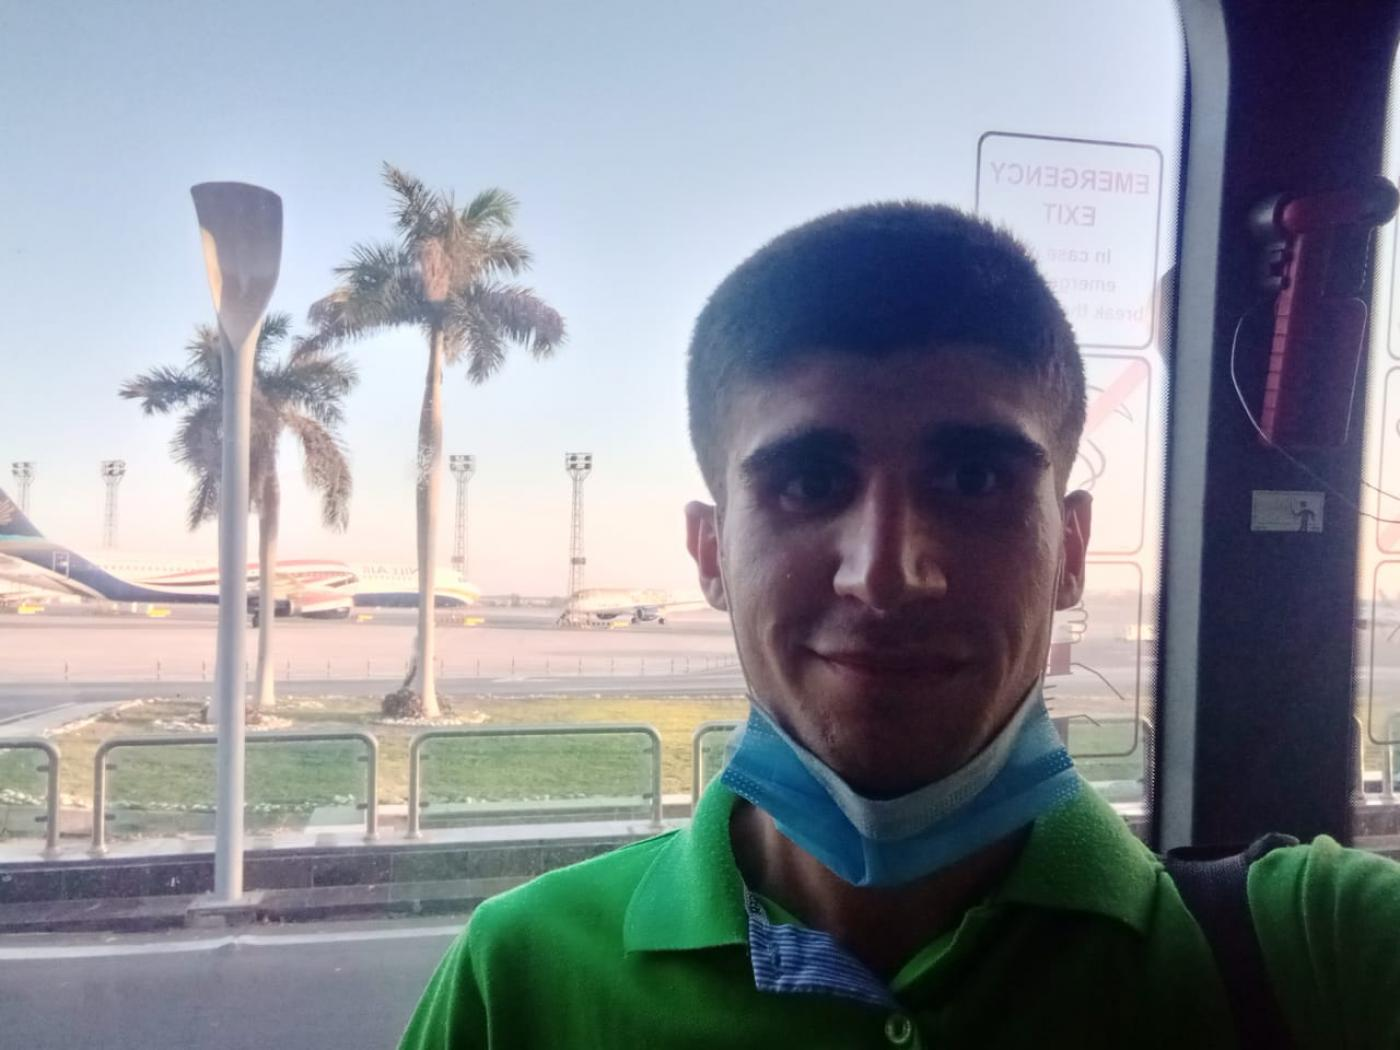 Egypt: Syrian sailor stranded in Suez Canal allowed home after four years | Middle East Eye